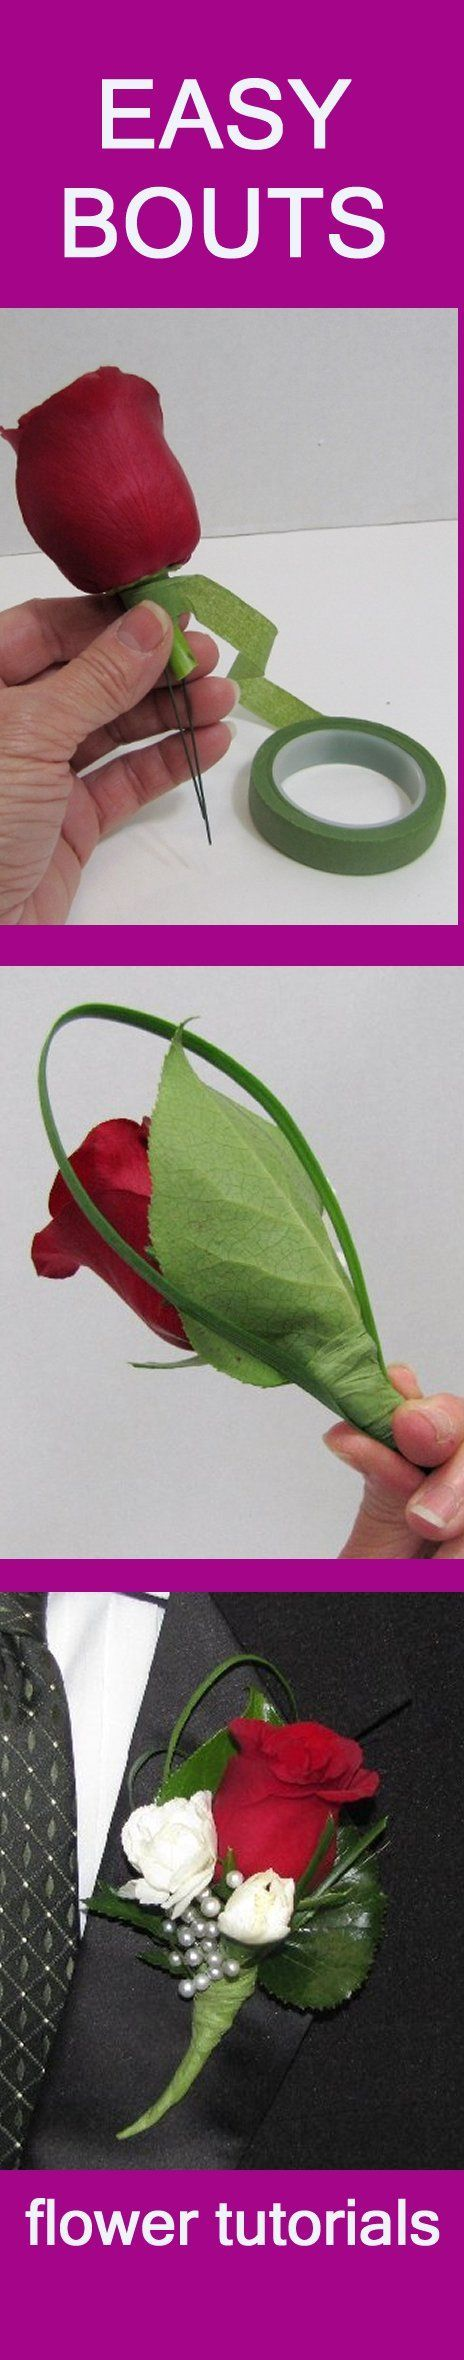 Boutonniere Tutorials - Learn How to Make Boutonnieres  Learn how to make bridal bouquets, wedding corsages, groom boutonnieres, reception table centerpieces and church decorations.  Buy wholesale flowers and discount florist supplies.